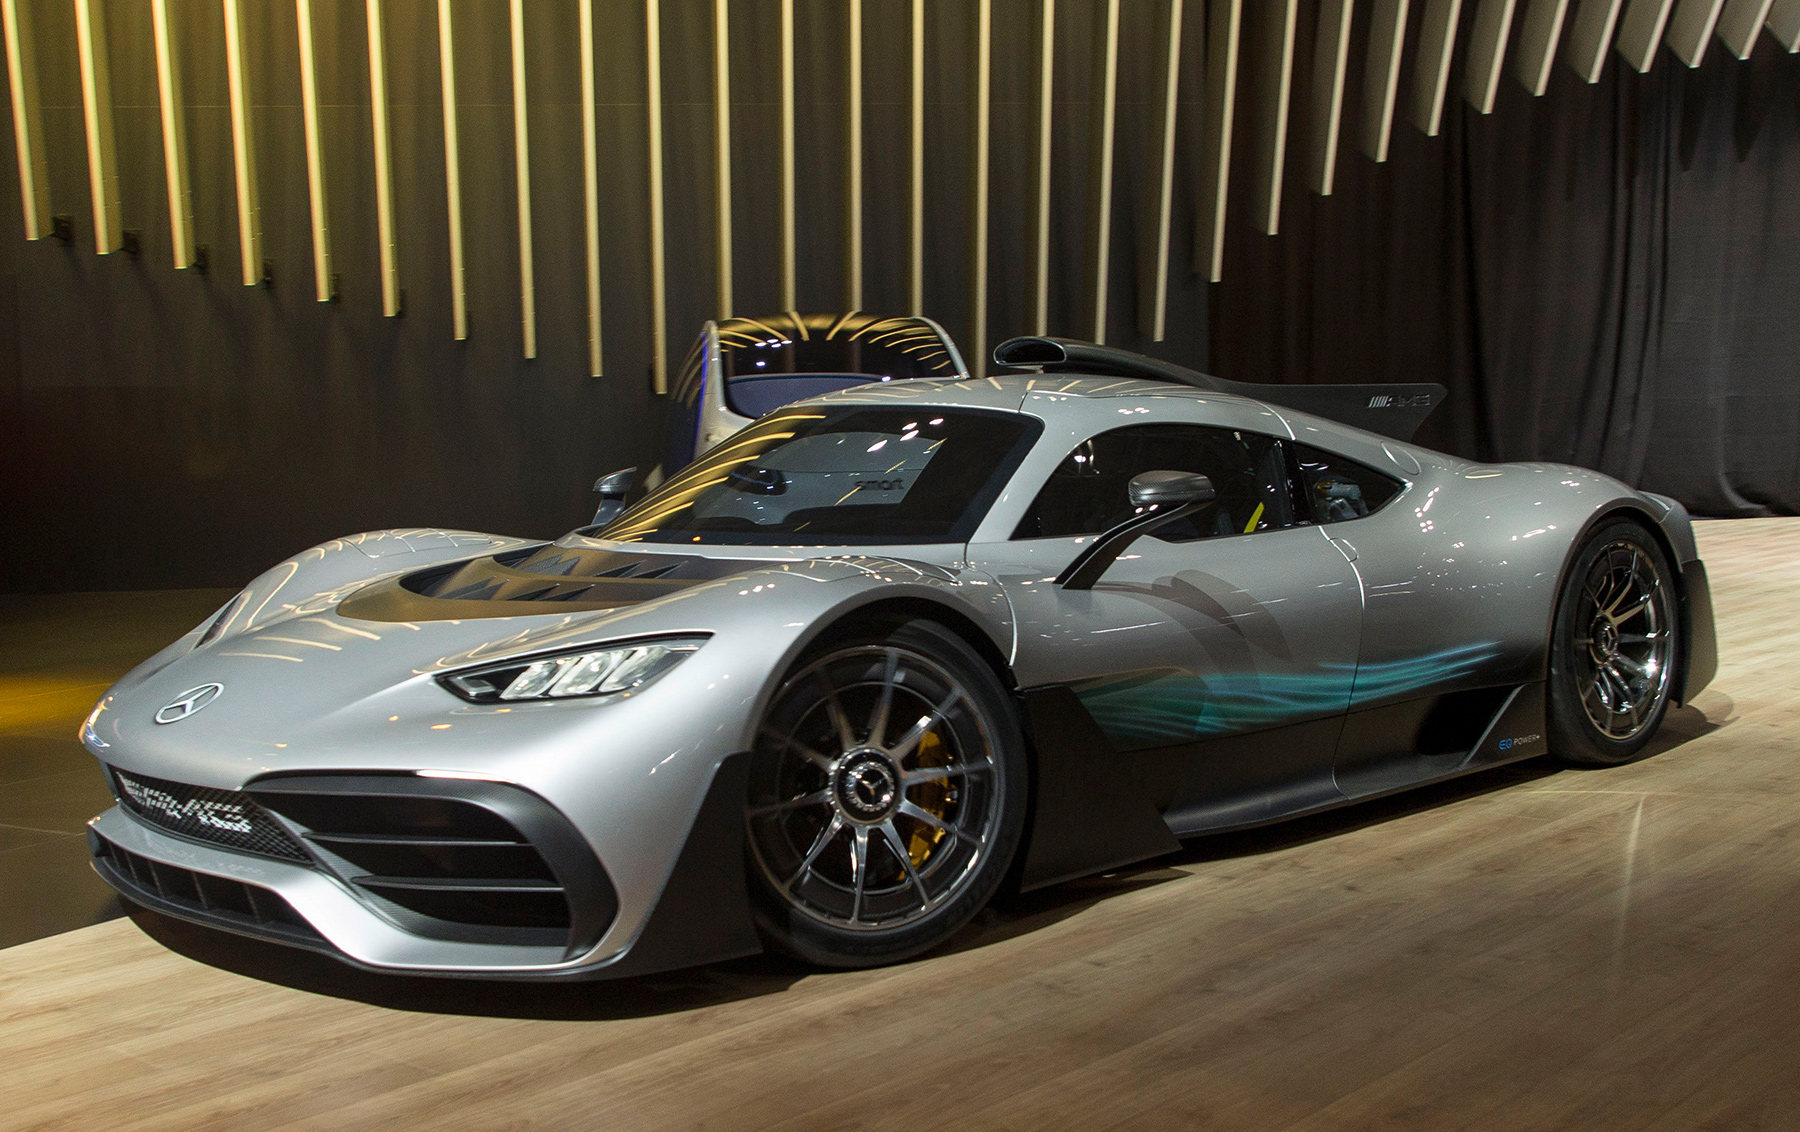 mercedes amg project one hypercar has asia premiere. Black Bedroom Furniture Sets. Home Design Ideas